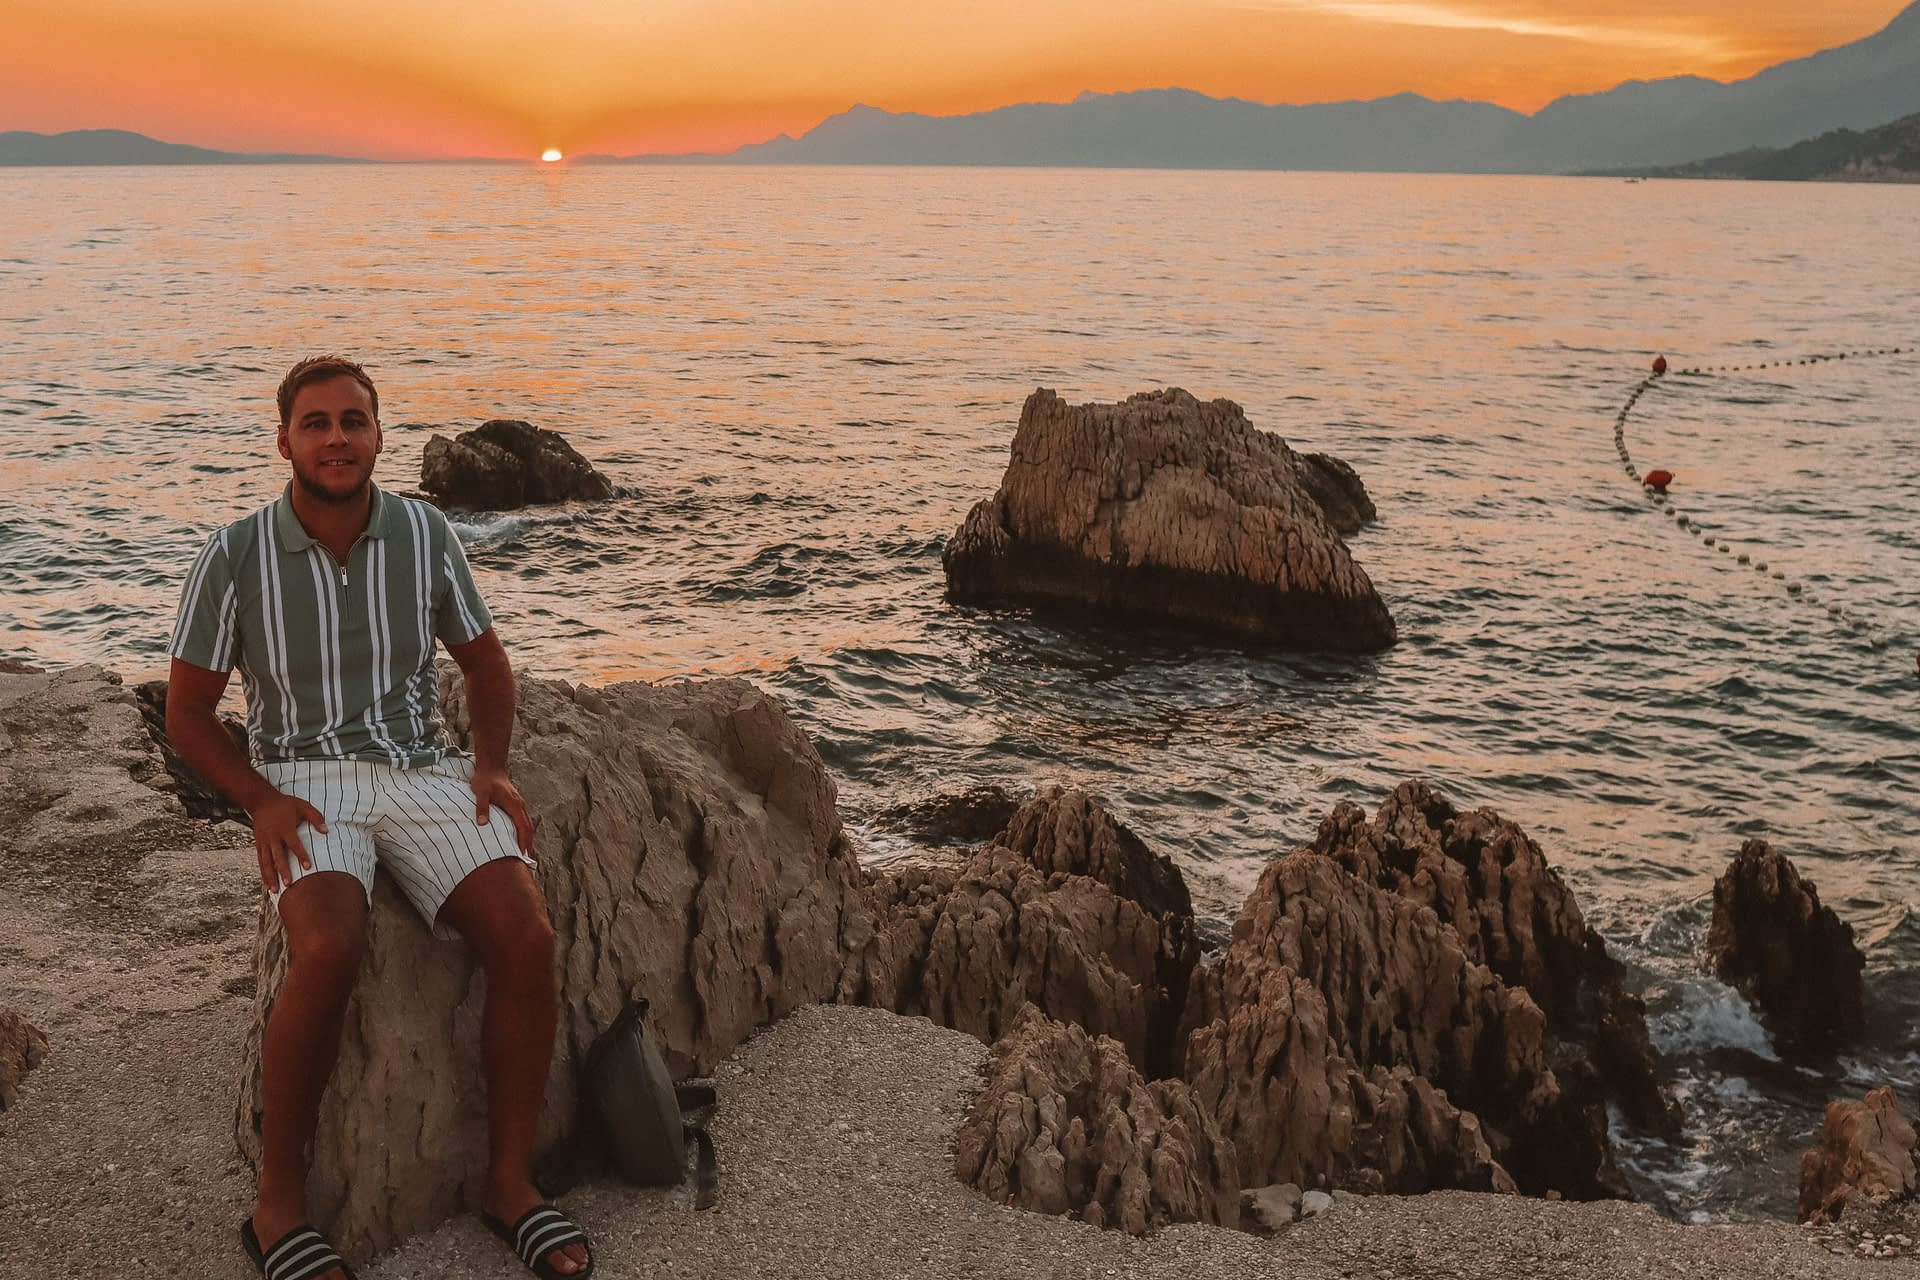 Man sat on rocks during the sunset with the ocean in the background